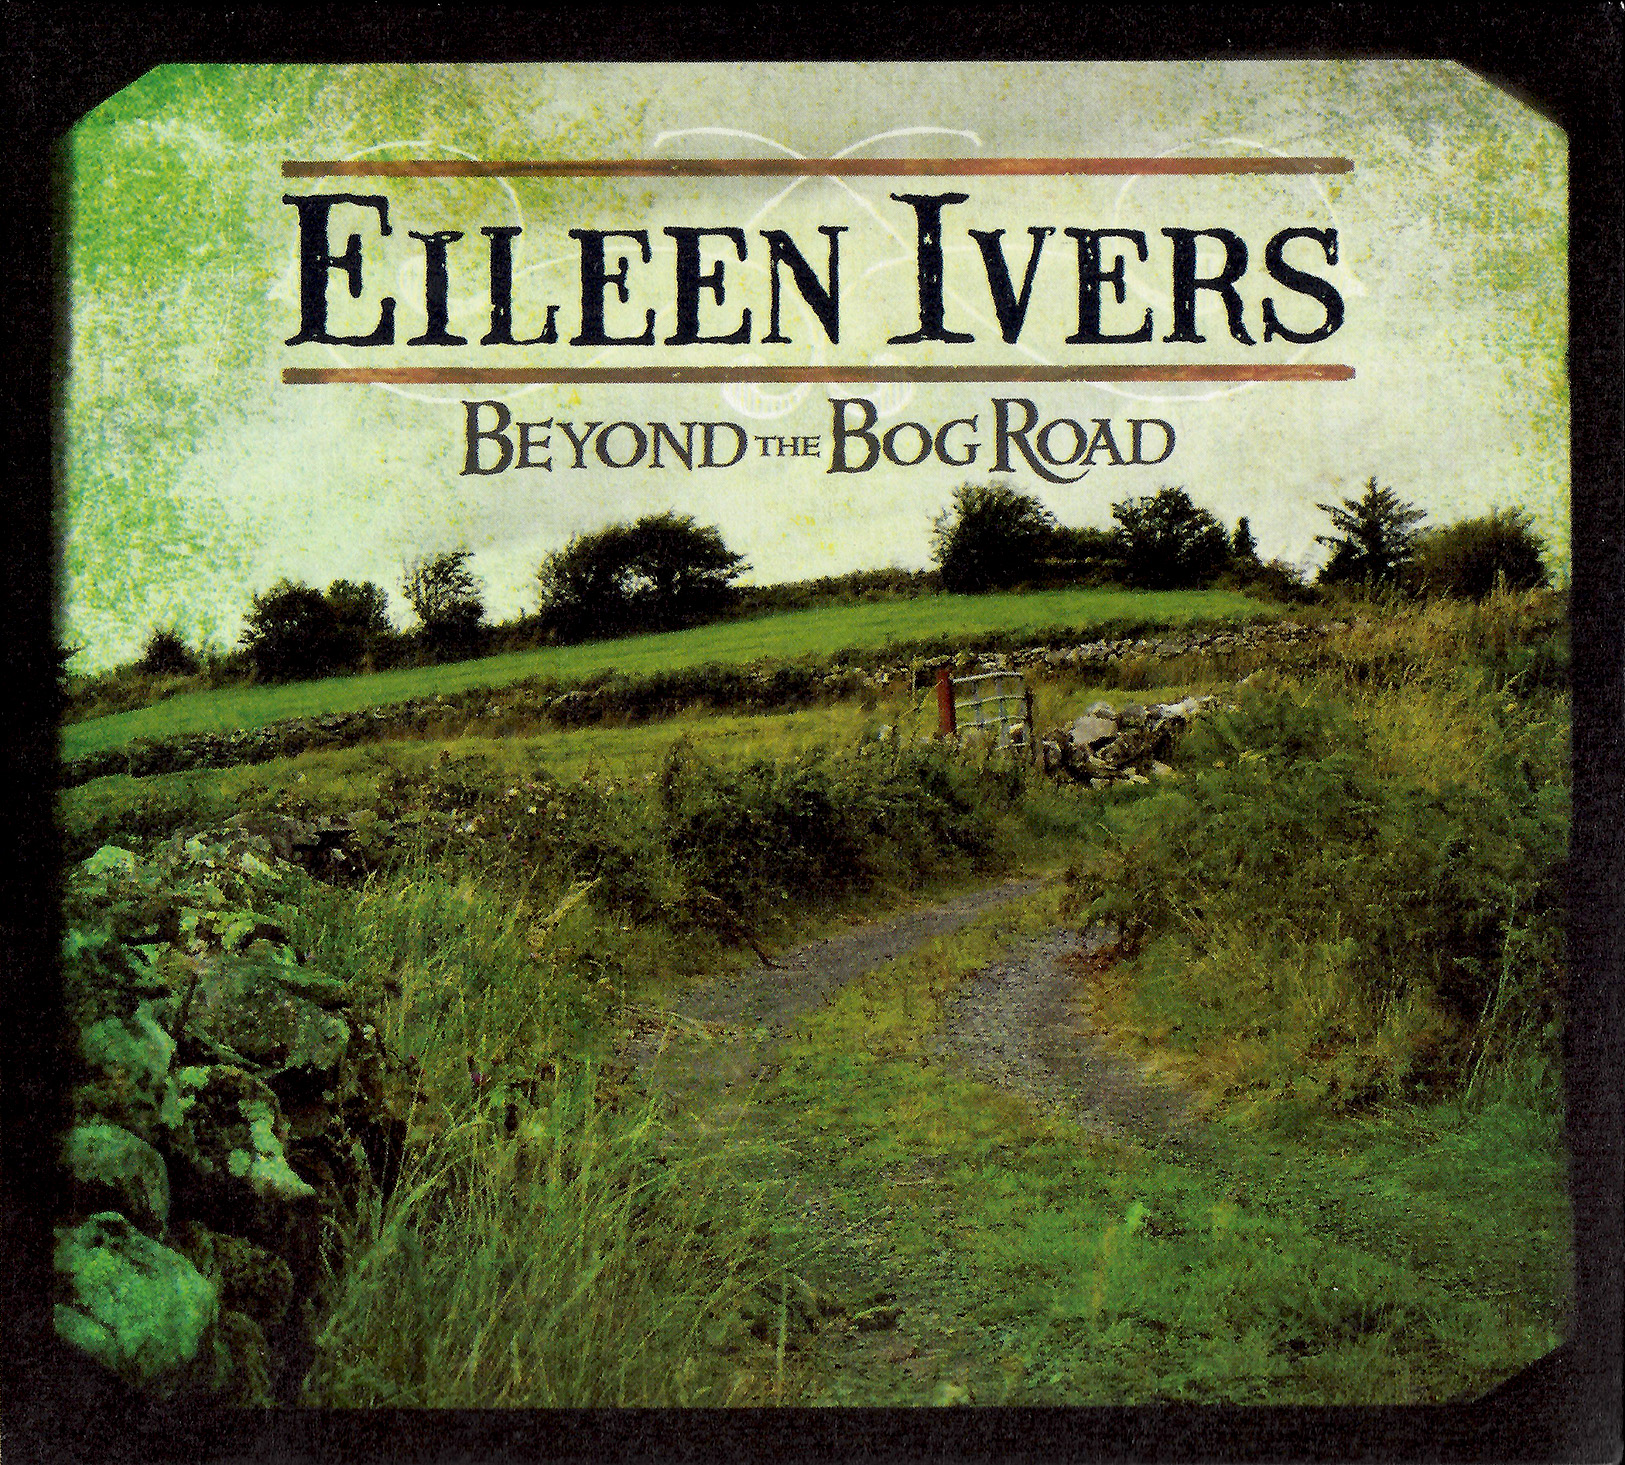 Beyond the Bog Road (Entertainment One Music, 2016)